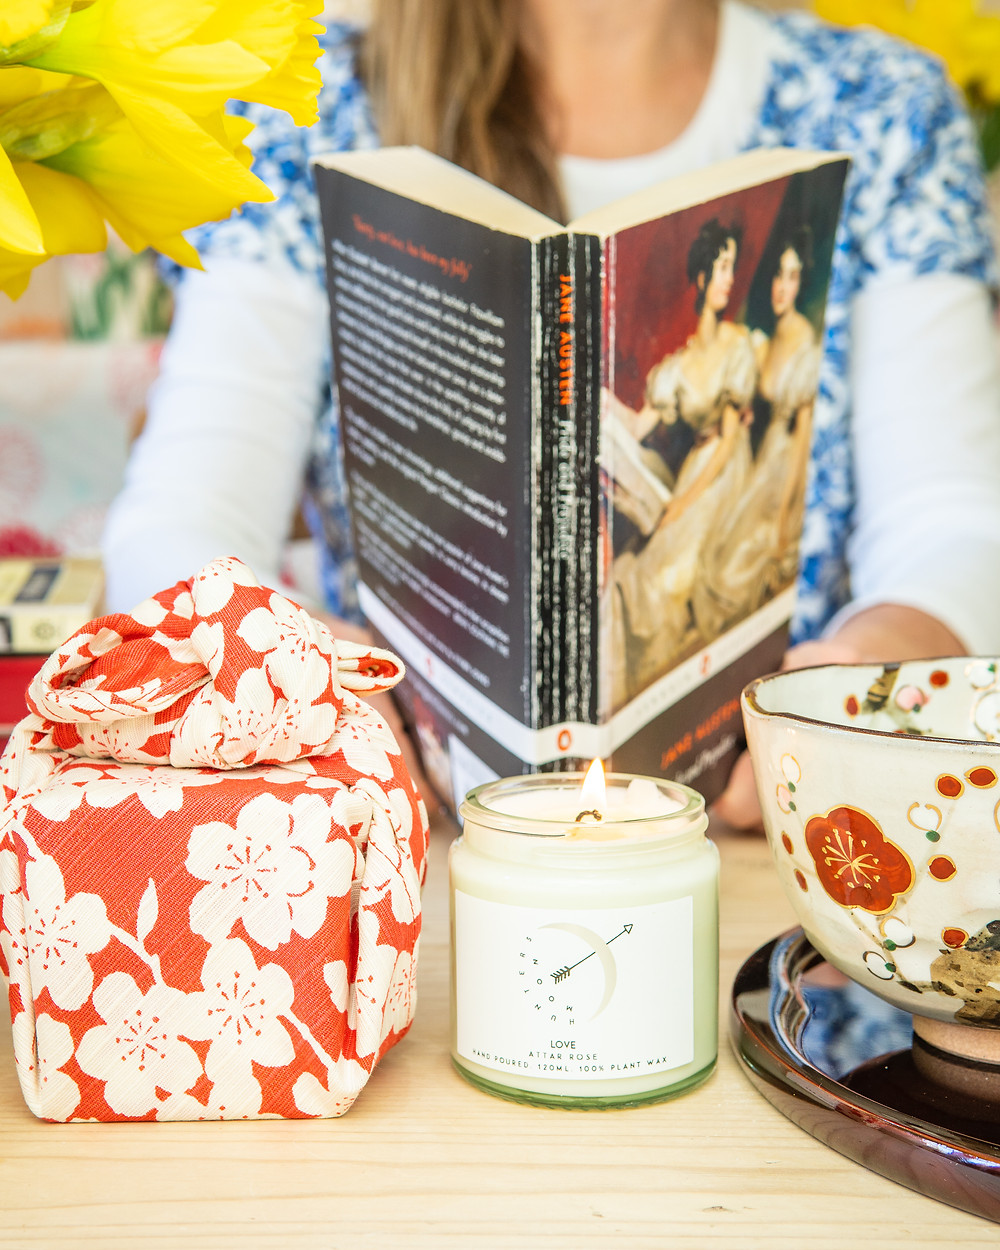 Jane Austen classic book daffodils flowers furoshiki scented candle wrapping cloth Kyoto tradition Japan